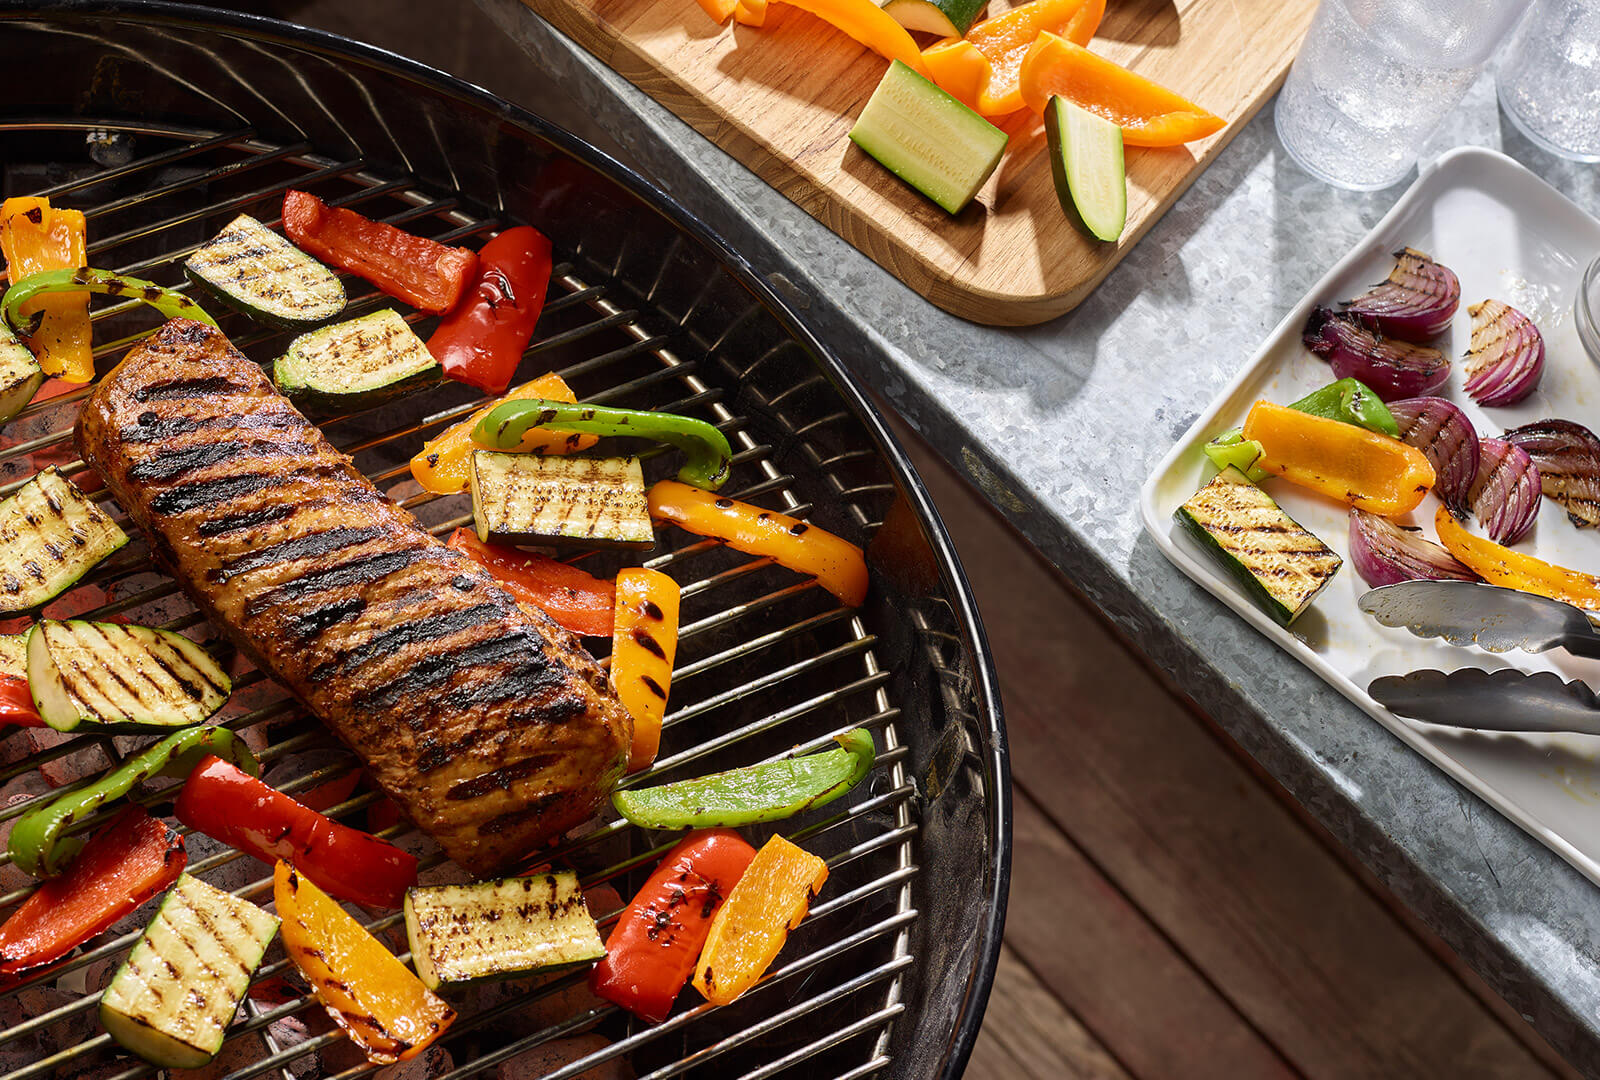 Grilled Pork Loin and vegetables on a grill